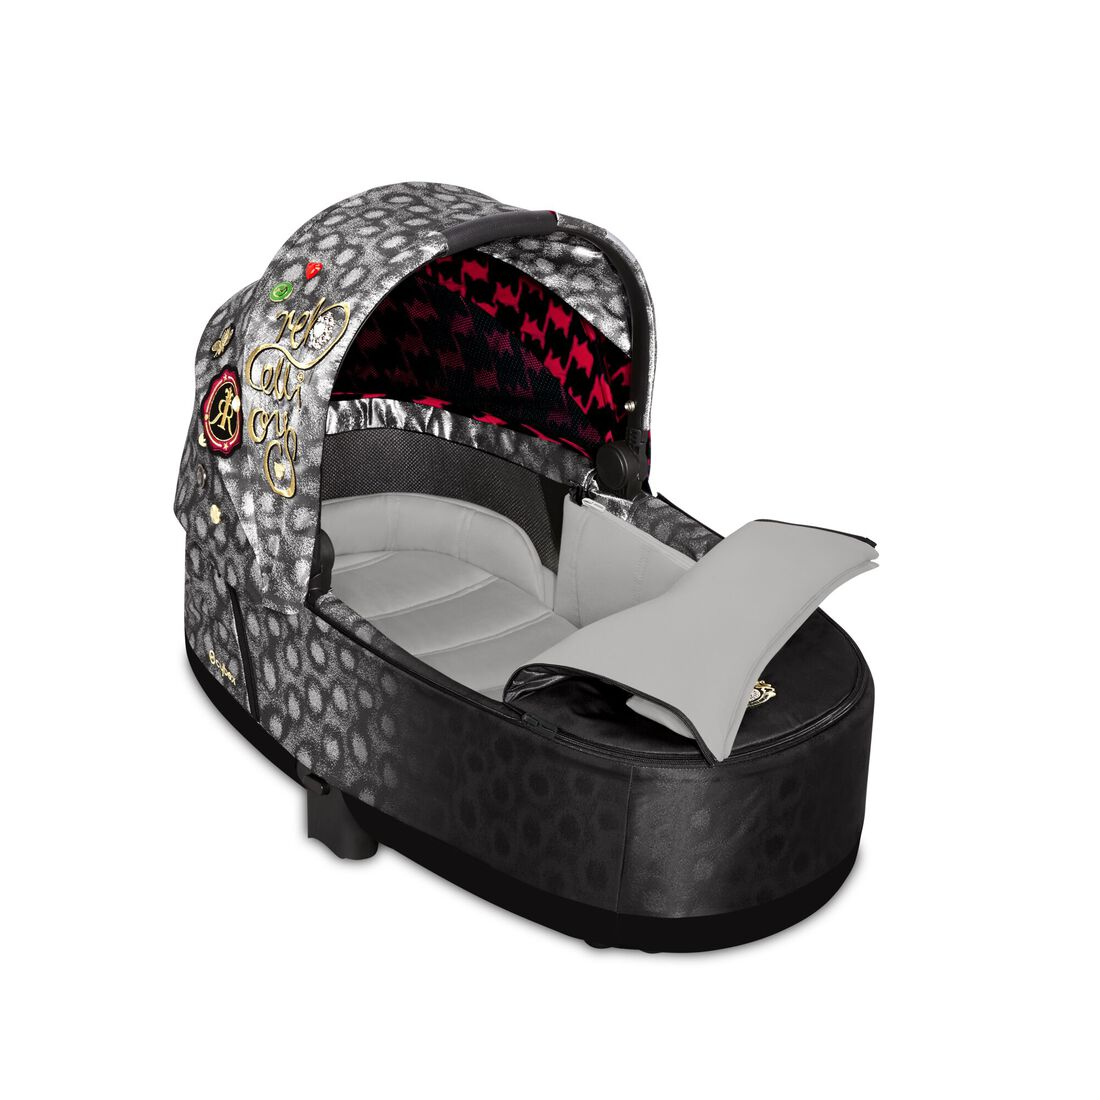 CYBEX Priam Lux Carry Cot - Rebellious in Rebellious large image number 2